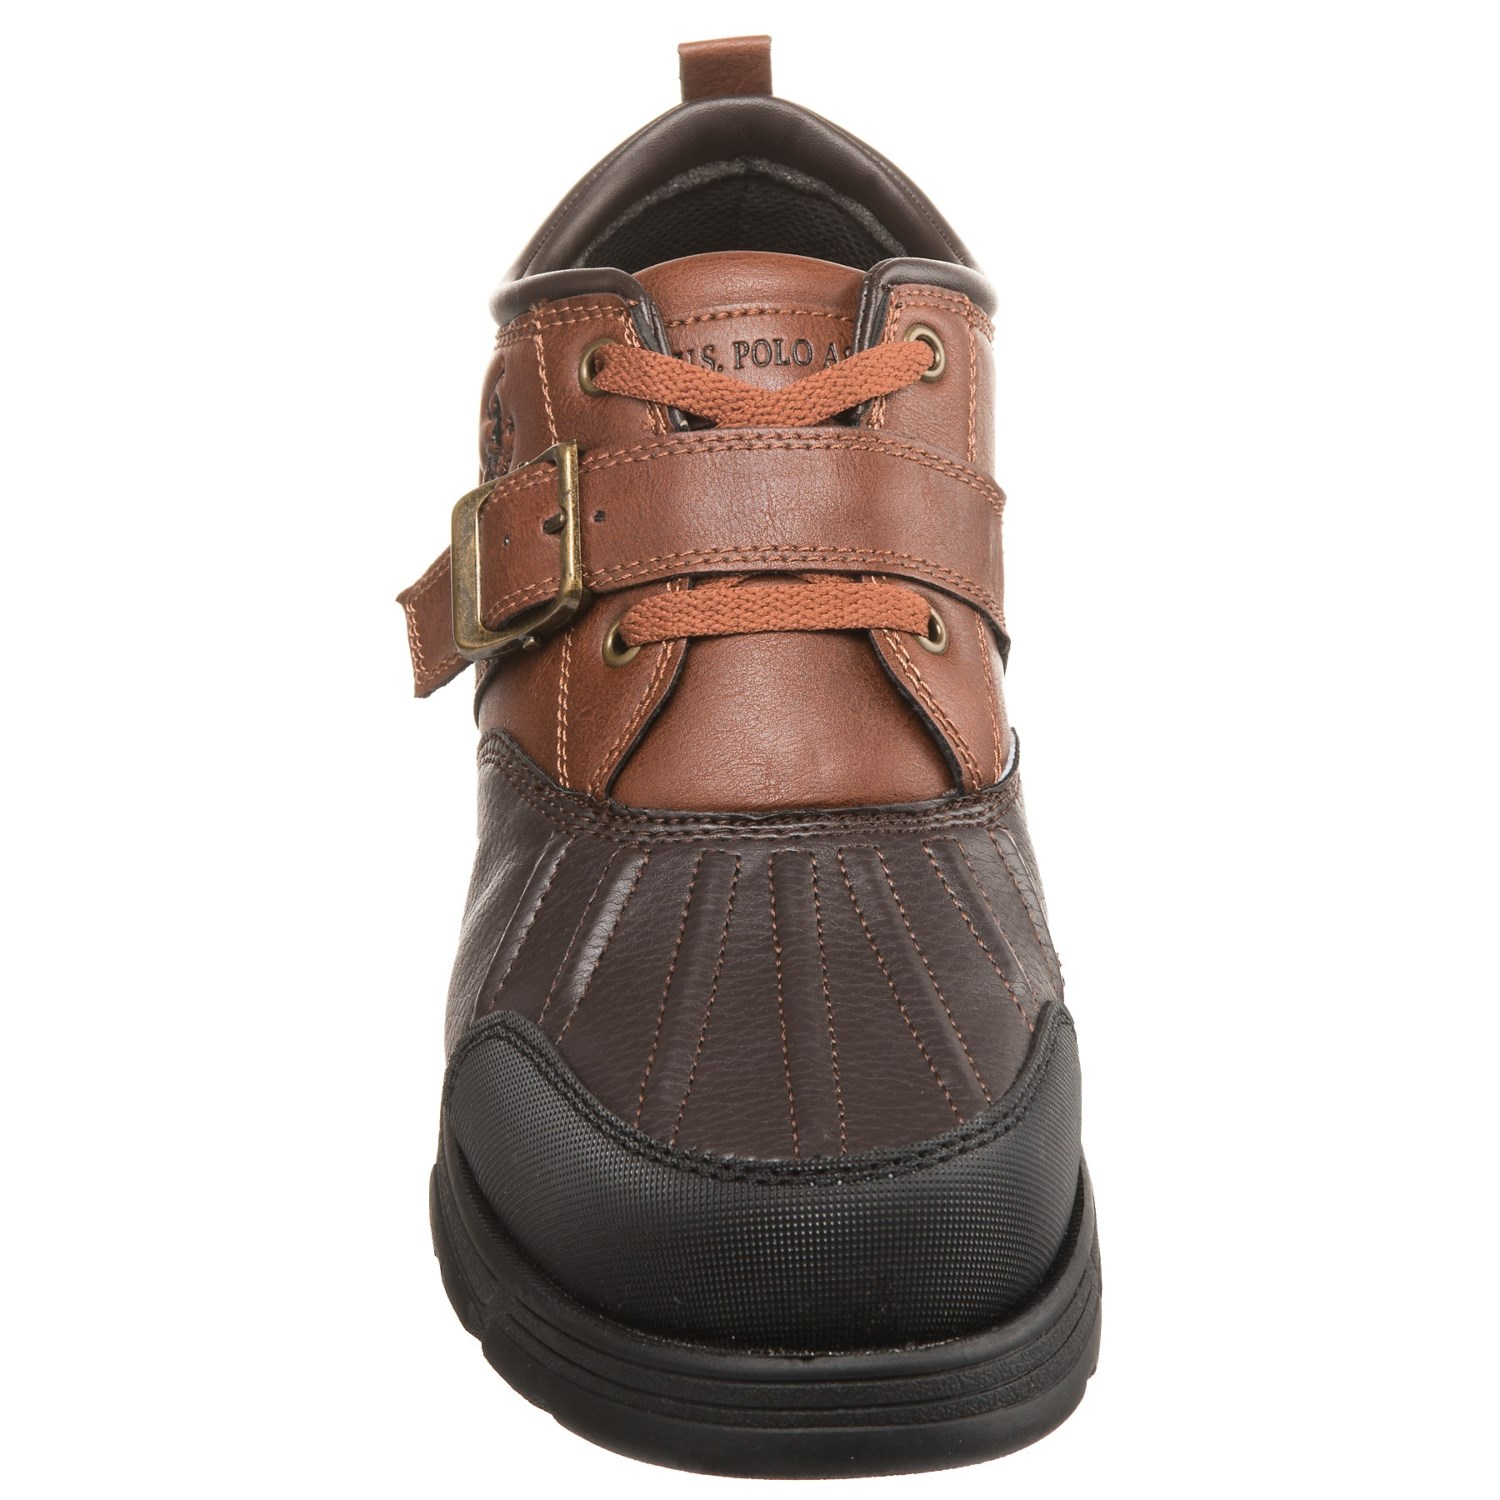 US Polo Assn Clancy II Low Duck Boots For Men Save - Us assn polo map